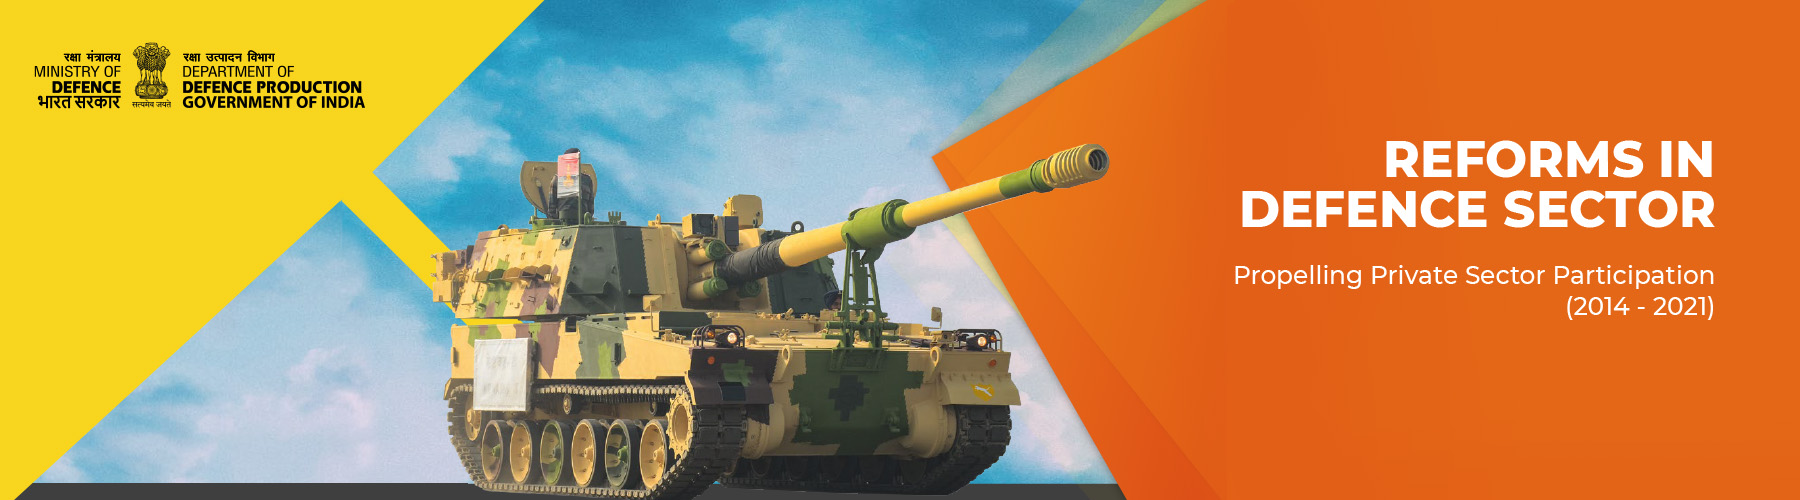 Reforms in Defence Sector